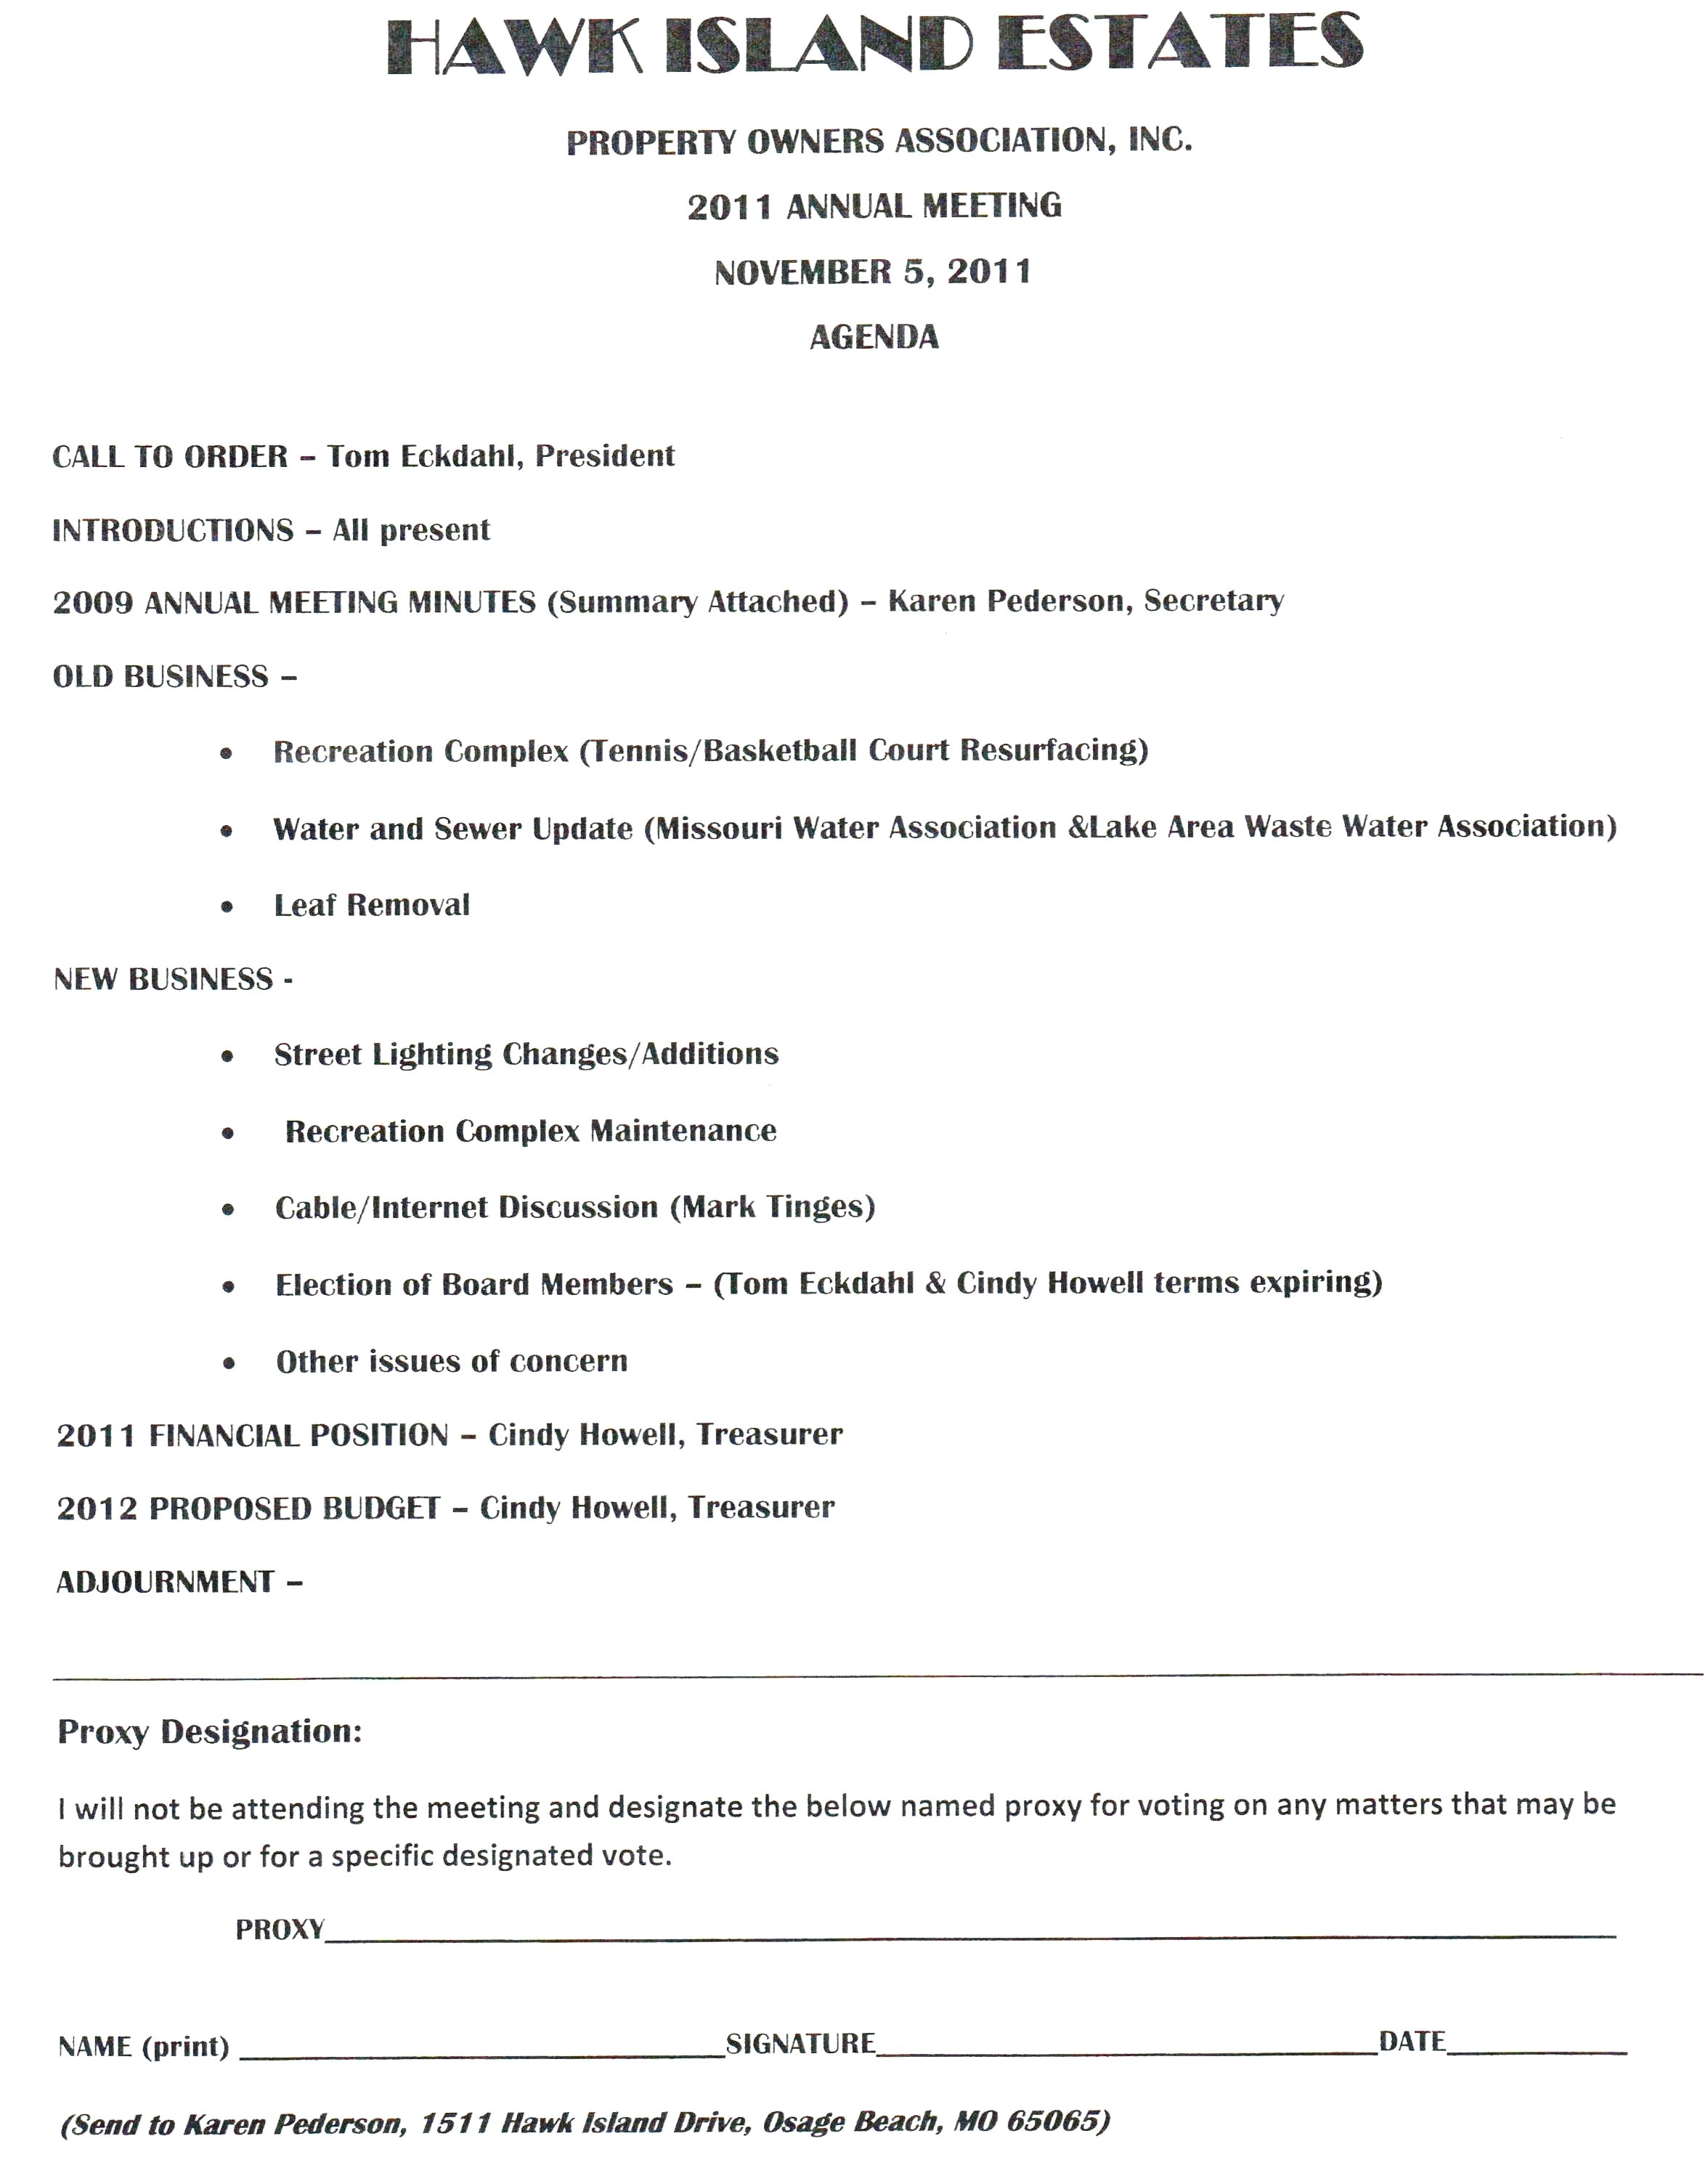 shareholders meeting agenda template resume follow up email the samples of resumes and cover letters dna synonym